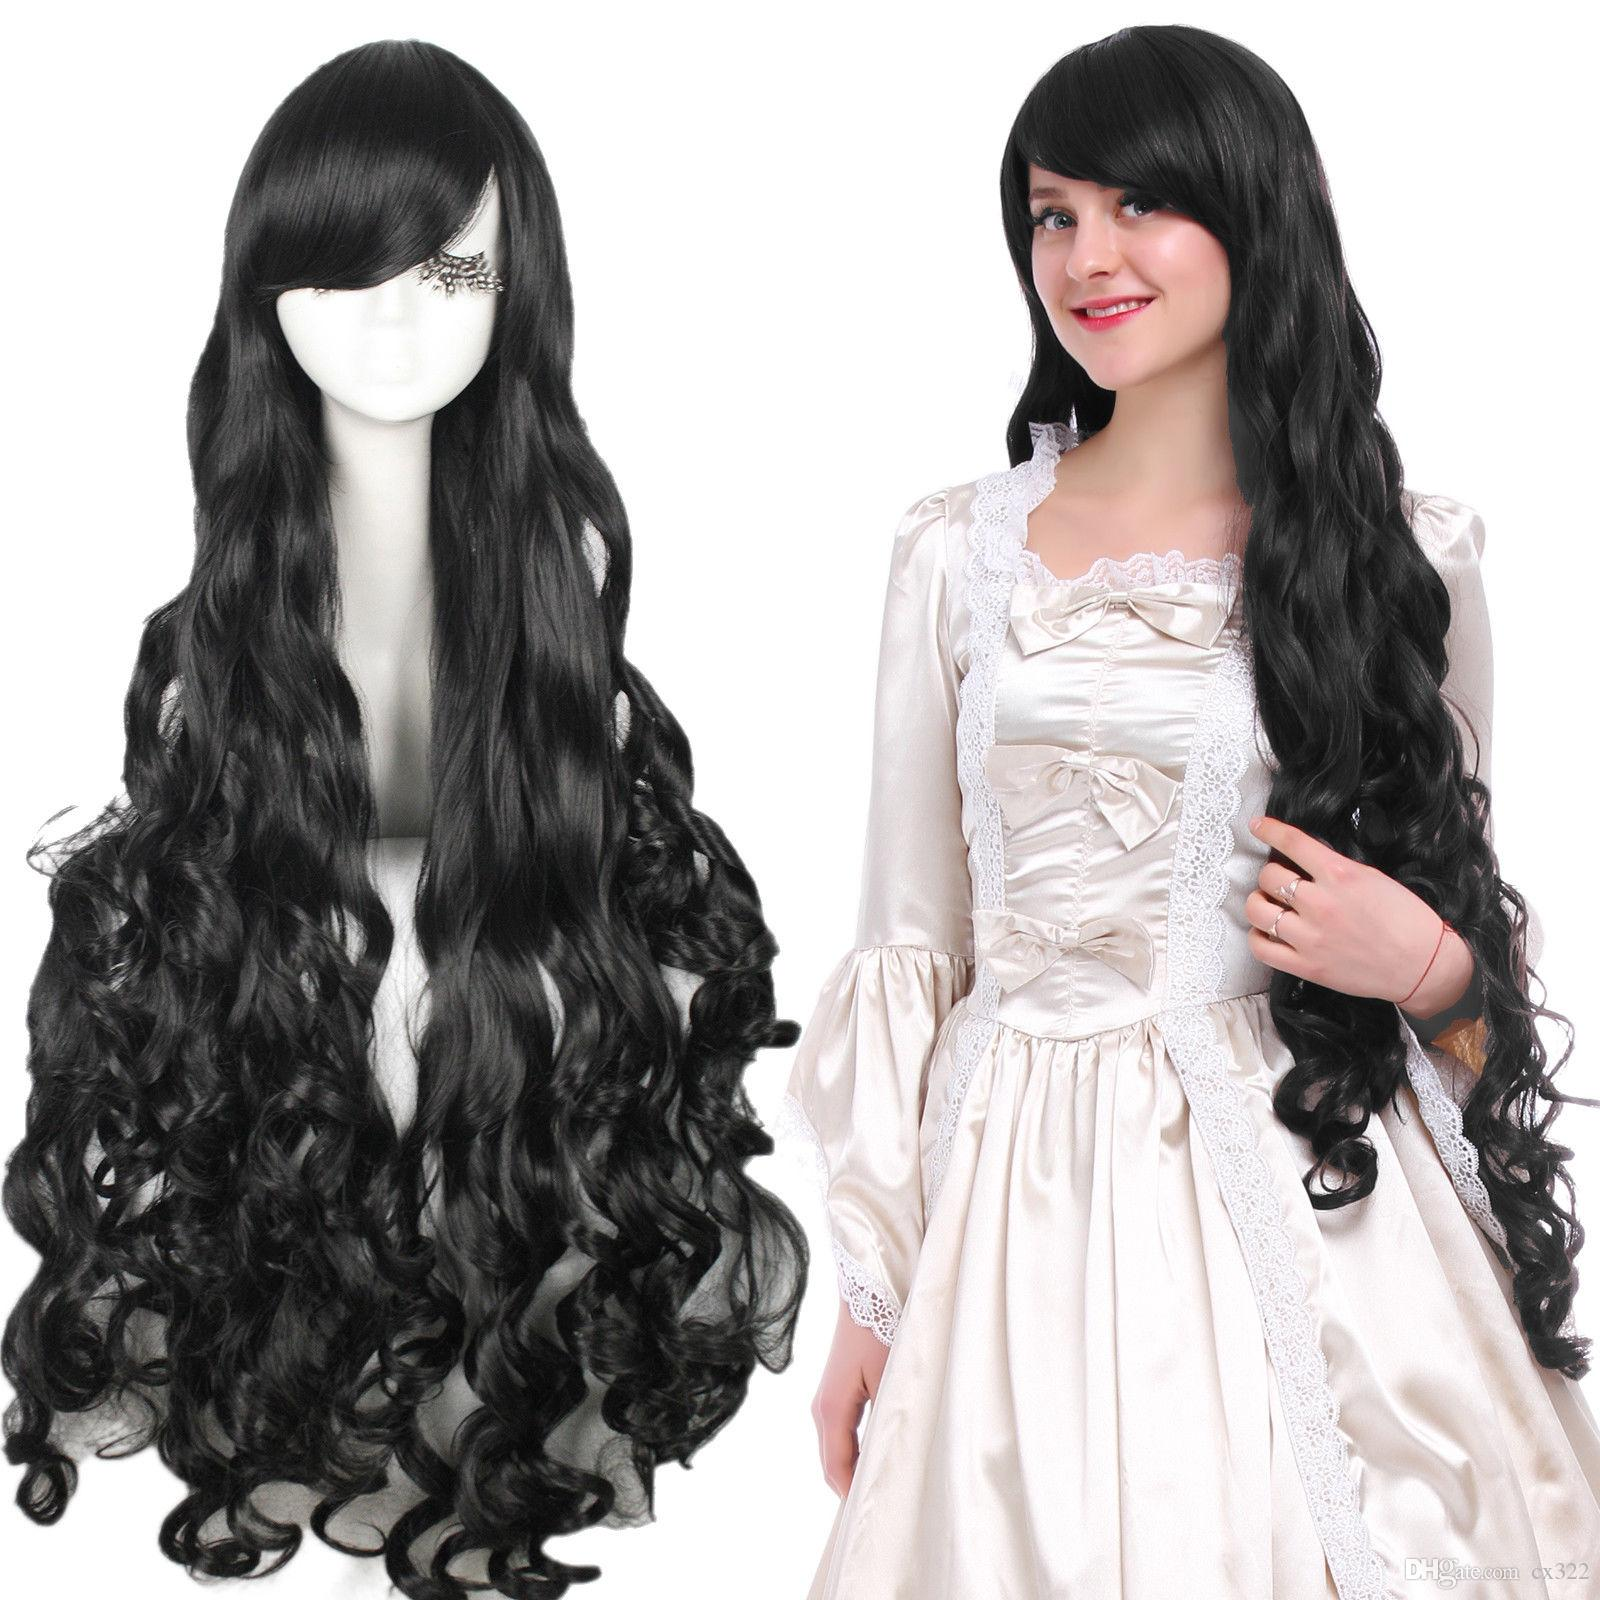 Anime Women Lolita Long Black Curly Wavy Wave Cosplay Wigs Full Hair Party Wig